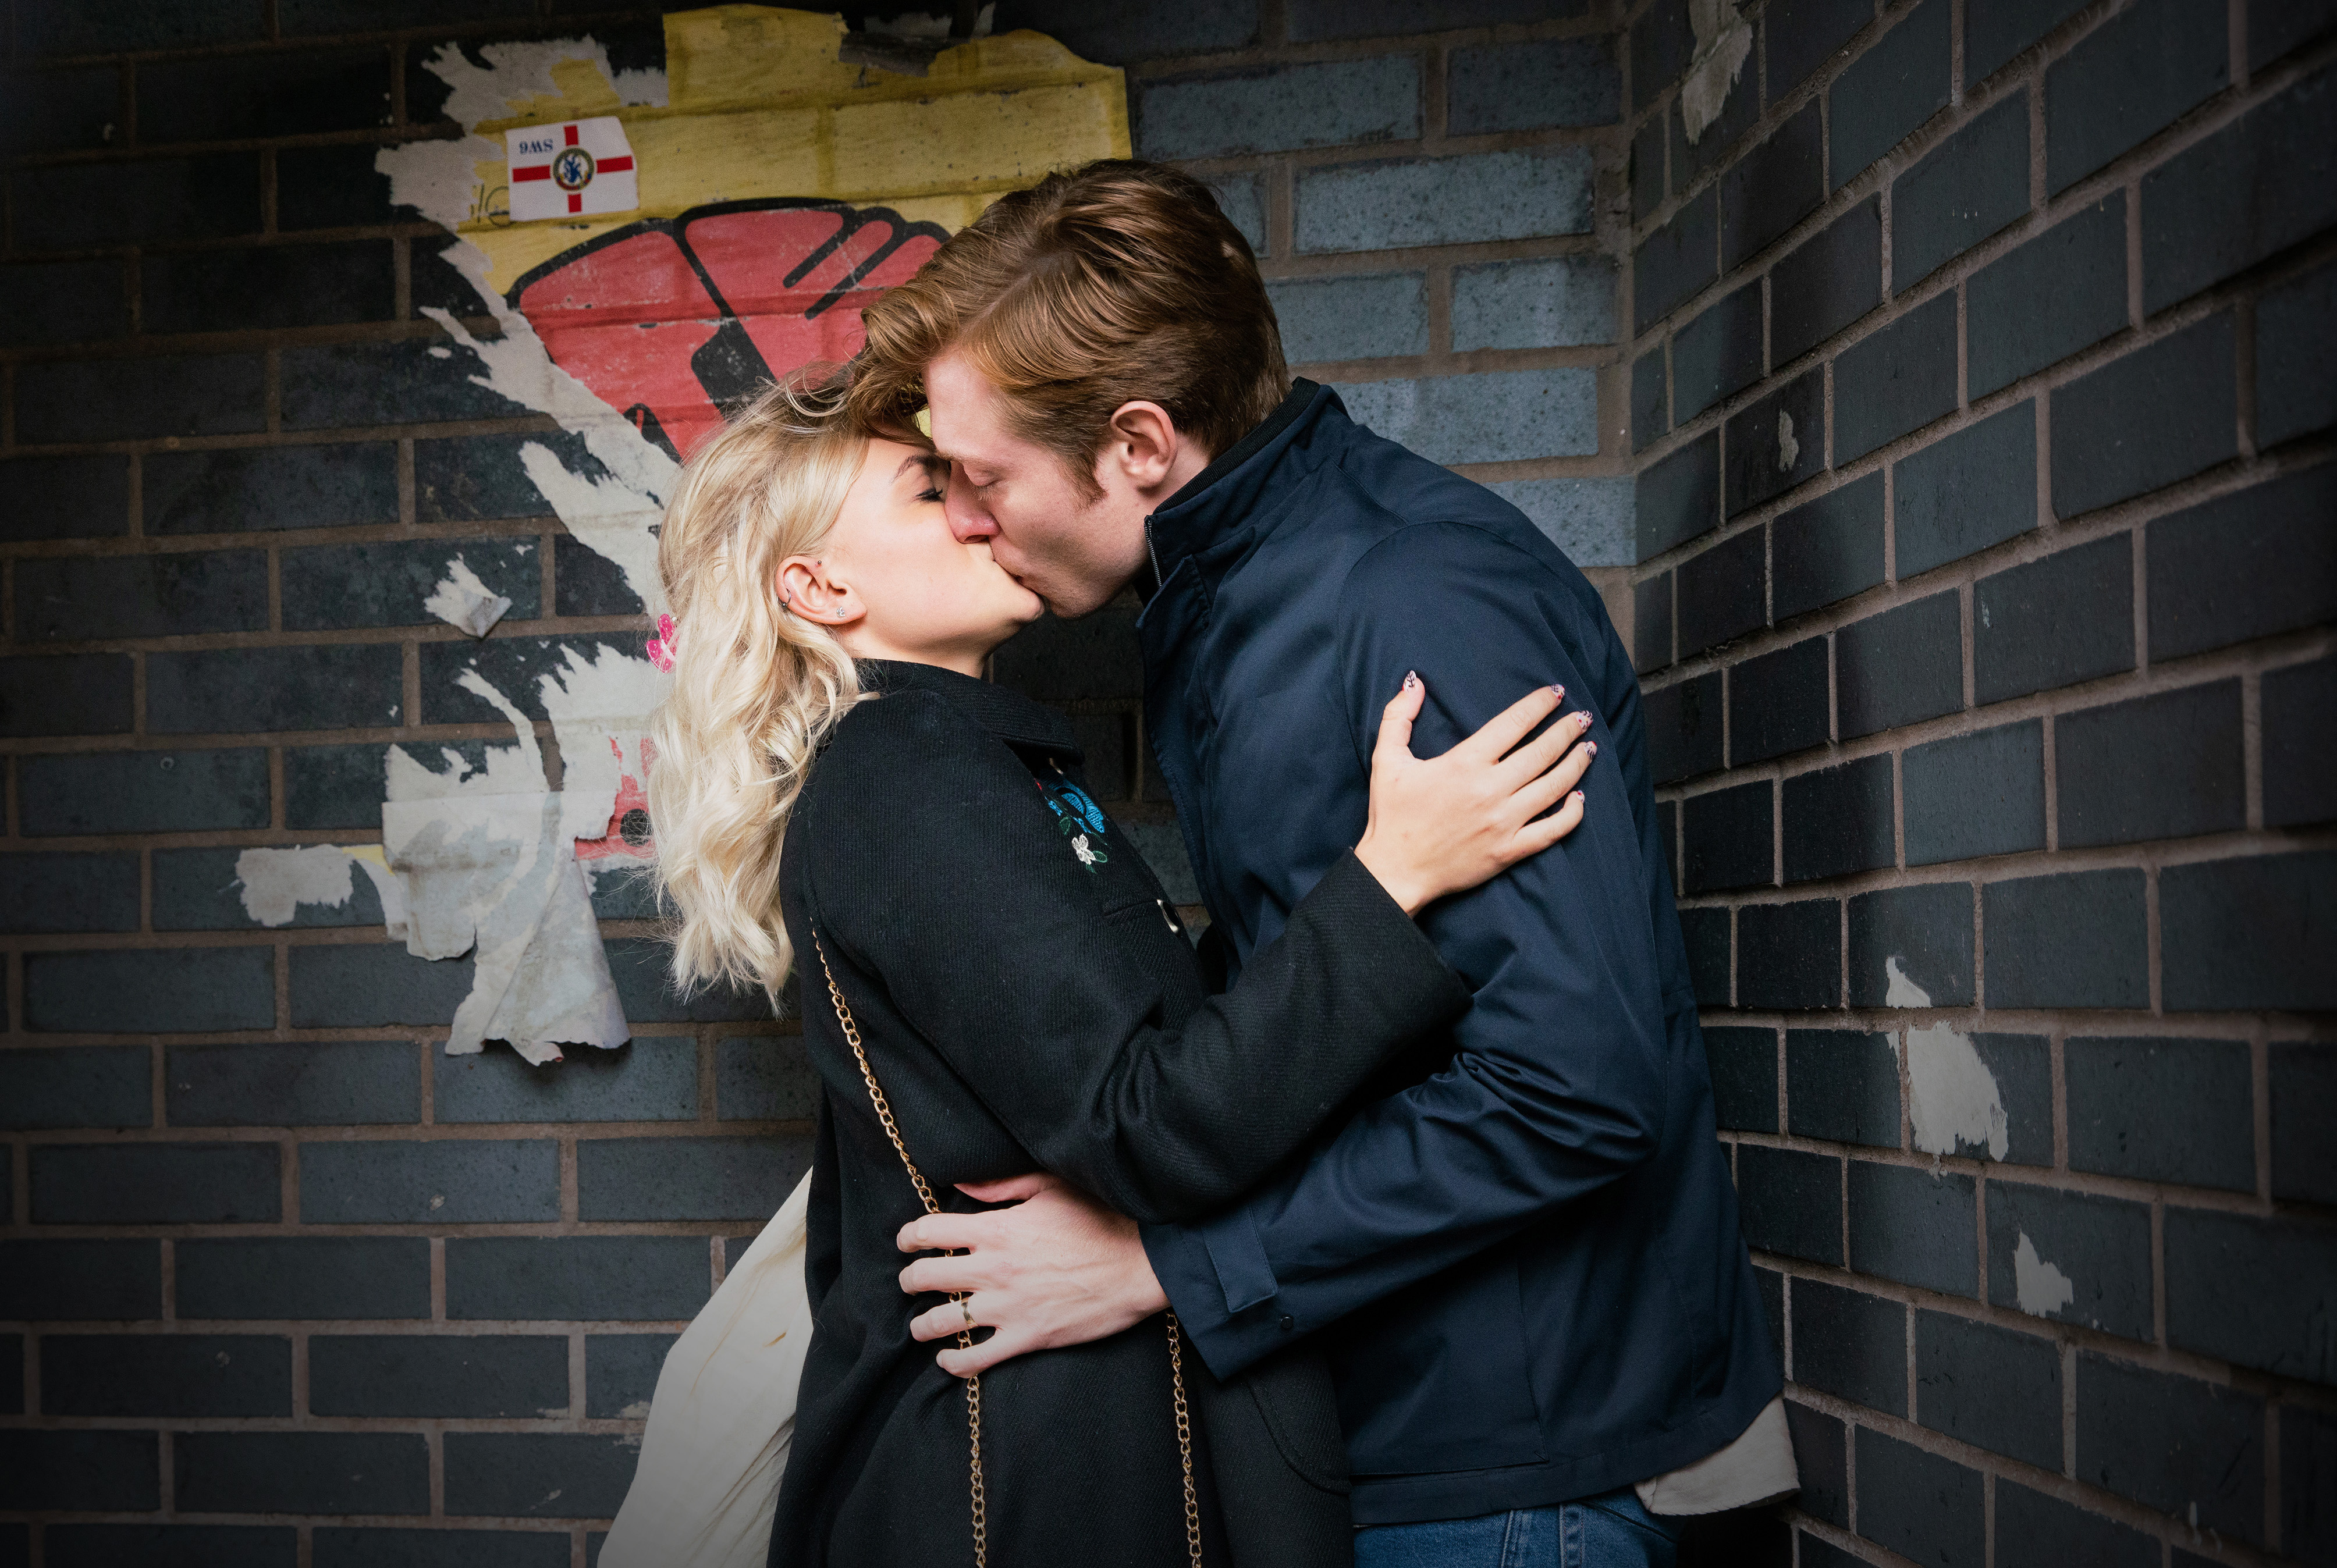 Coronation Street SPOILERS: Daniel proposes to Bethany - with Sinead's wedding ring!